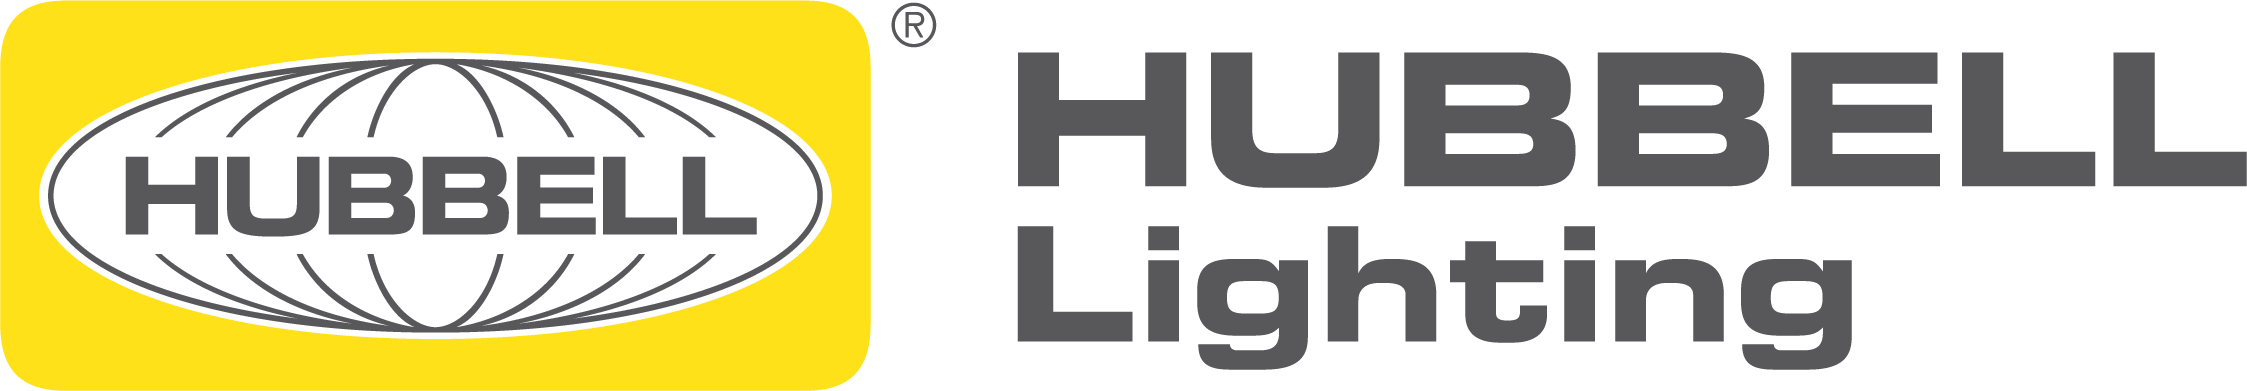 HUBBELL-LIGHTING-cmyk-80.png